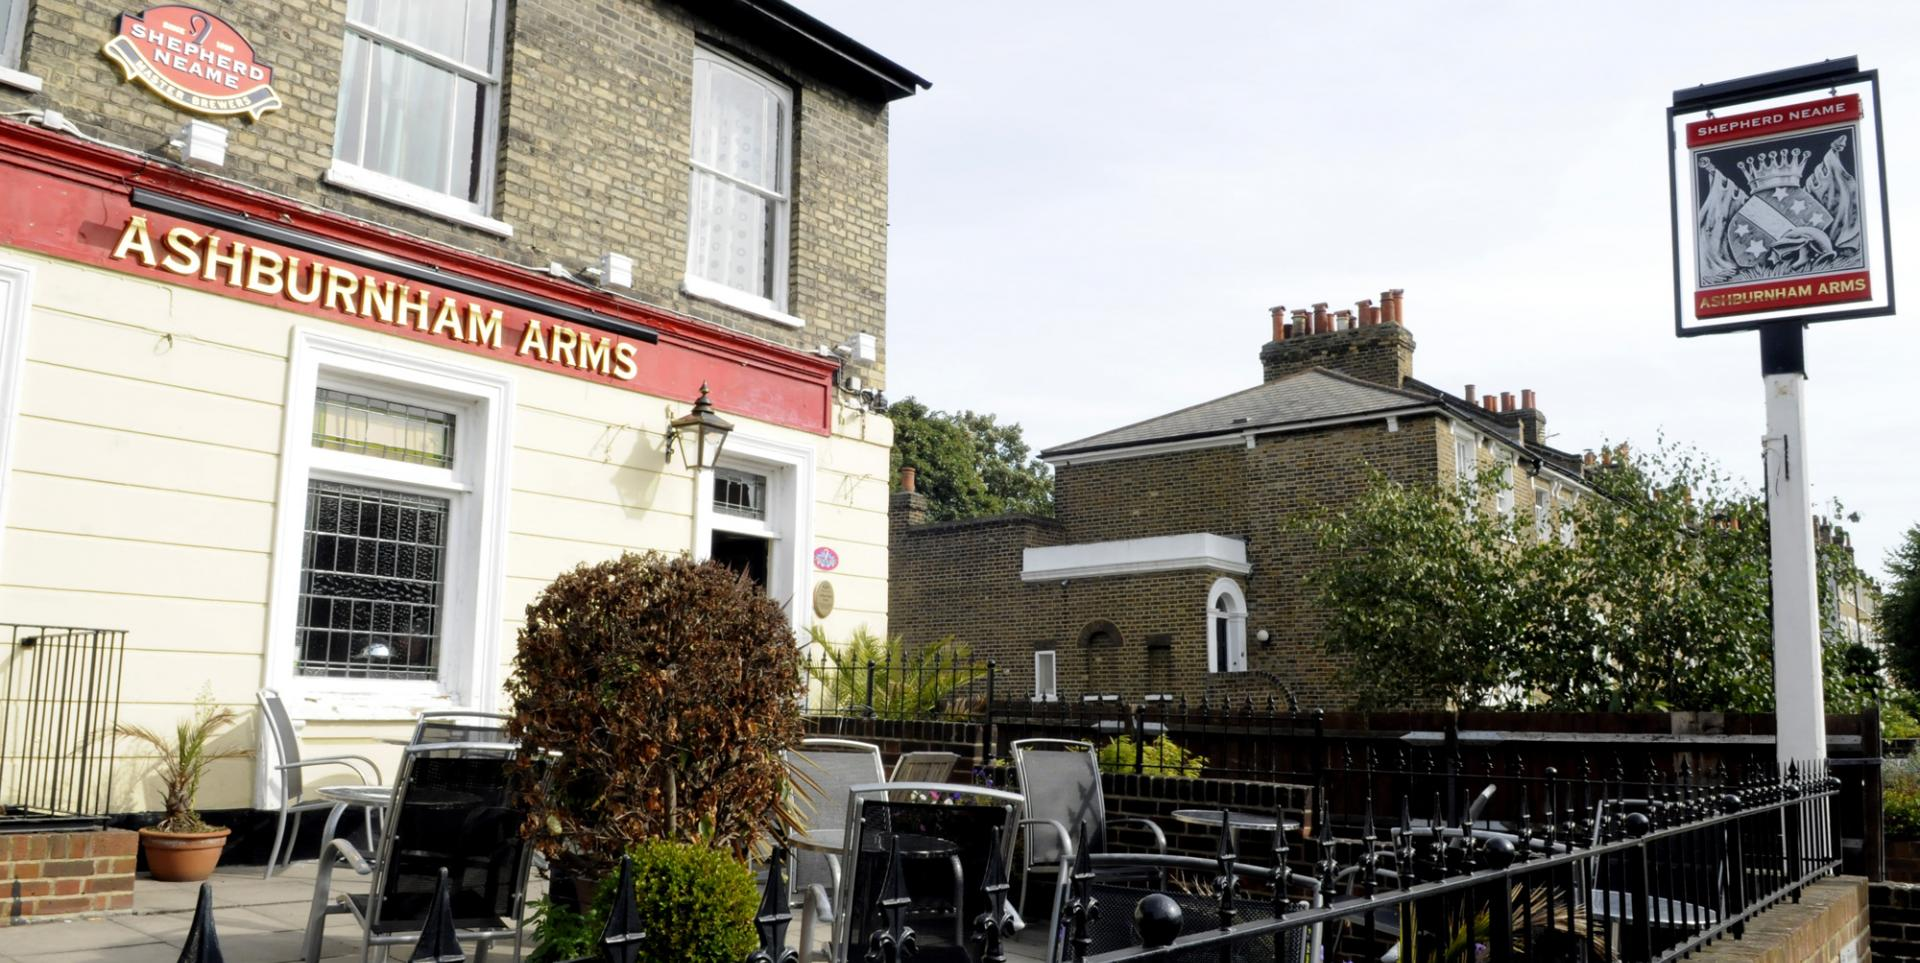 The Ashburnham Arms Greenwich